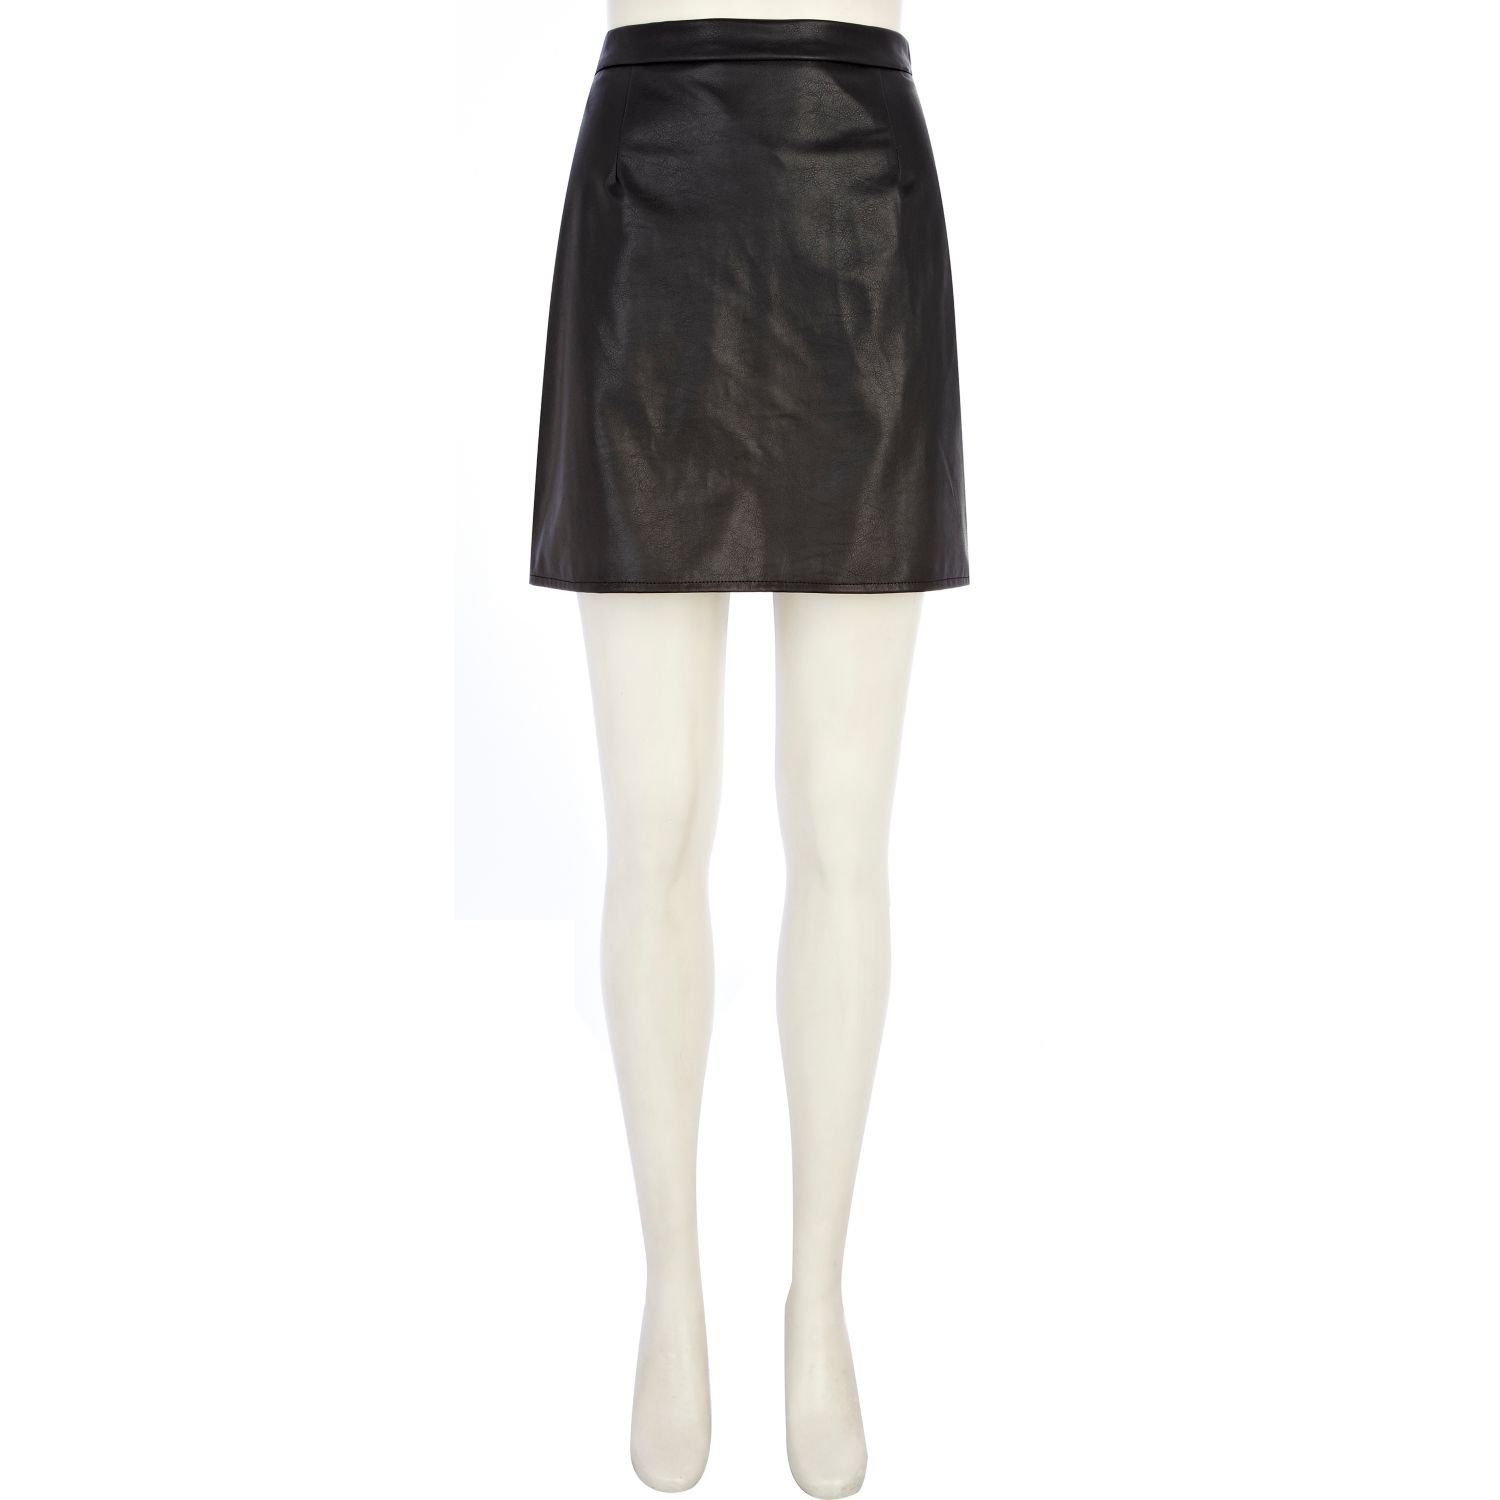 Black Leather Look A Line Skirt - Dress Ala